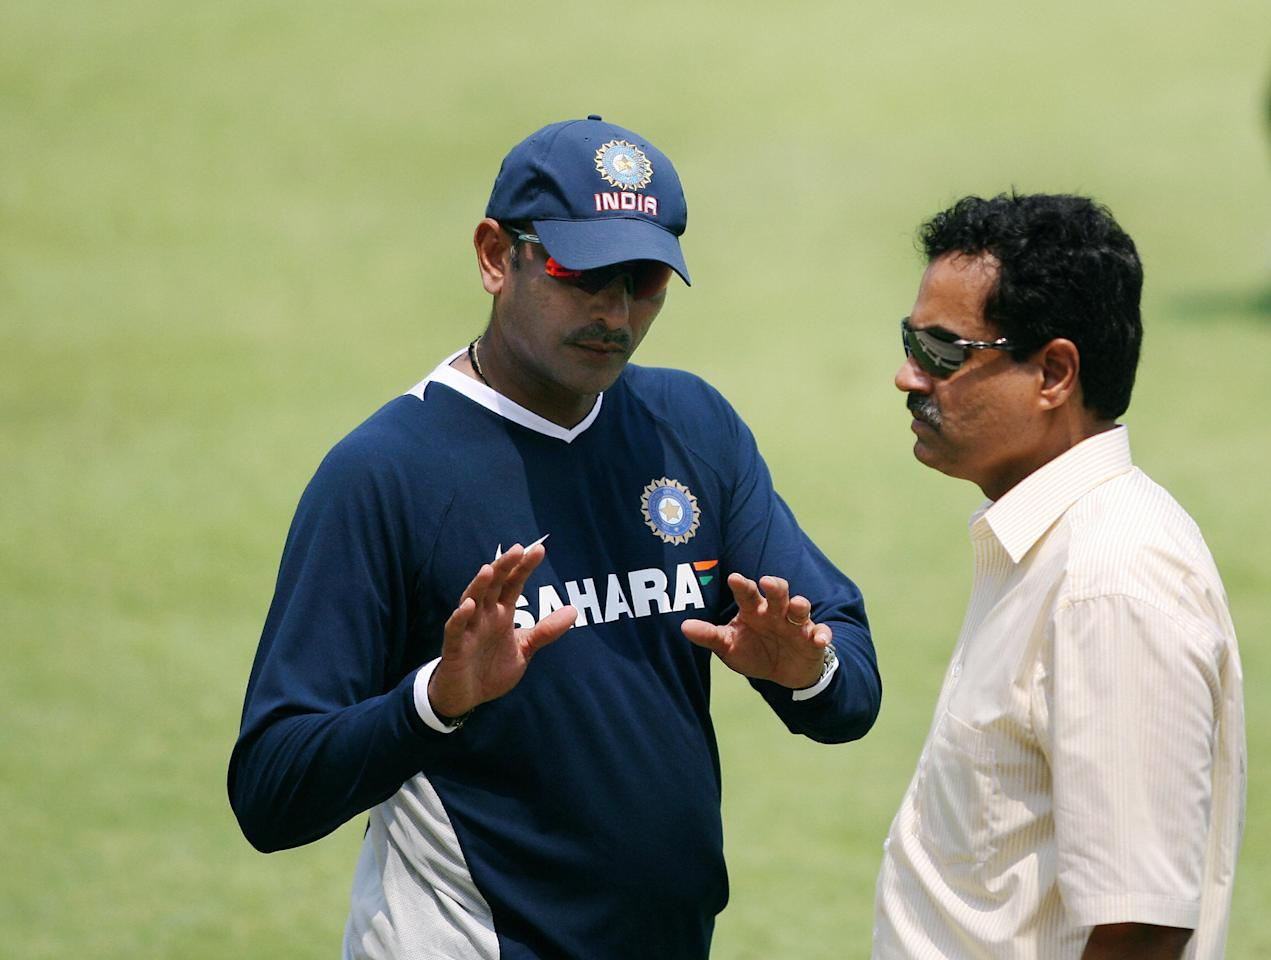 Kolkata, INDIA: Indian chief selecter Dilip Vengsarkar (R) listen to team manager Ravi Shastri during net practice on the fourth day of a five-day conditioning camp at Eden Gardens in Kolkata, 05 May 2007.  The Indian team is preparing to head for Bangladesh to play a One Day International and Test series.   AFP PHOTO/Deshakayan CHOWDHURY  (Photo credit should read DESHAKALYAN CHOWDHURY/AFP/Getty Images)